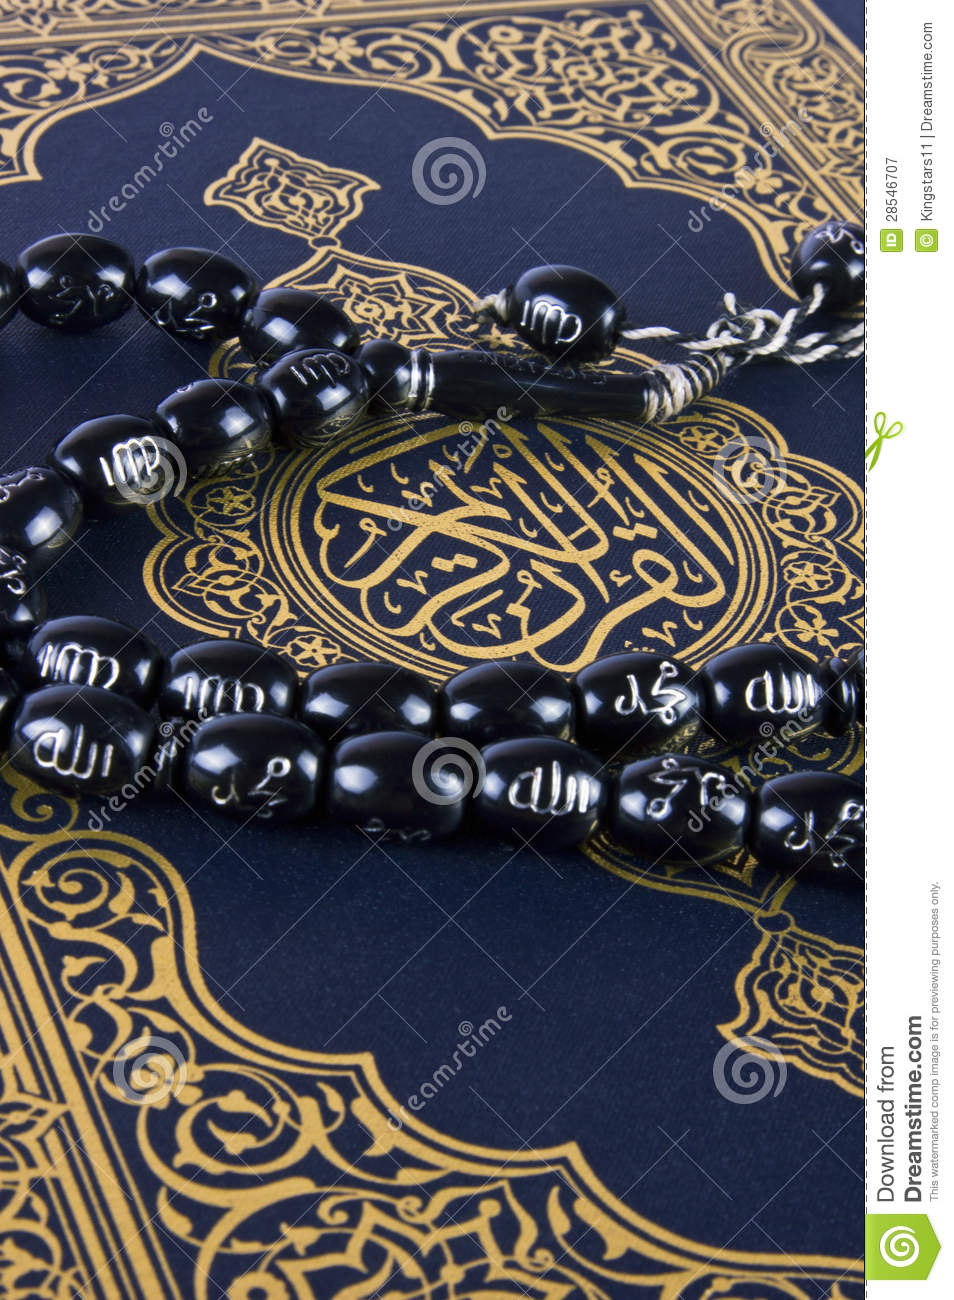 Citaten Quran Gratis : The holy quran cover royalty free stock photography